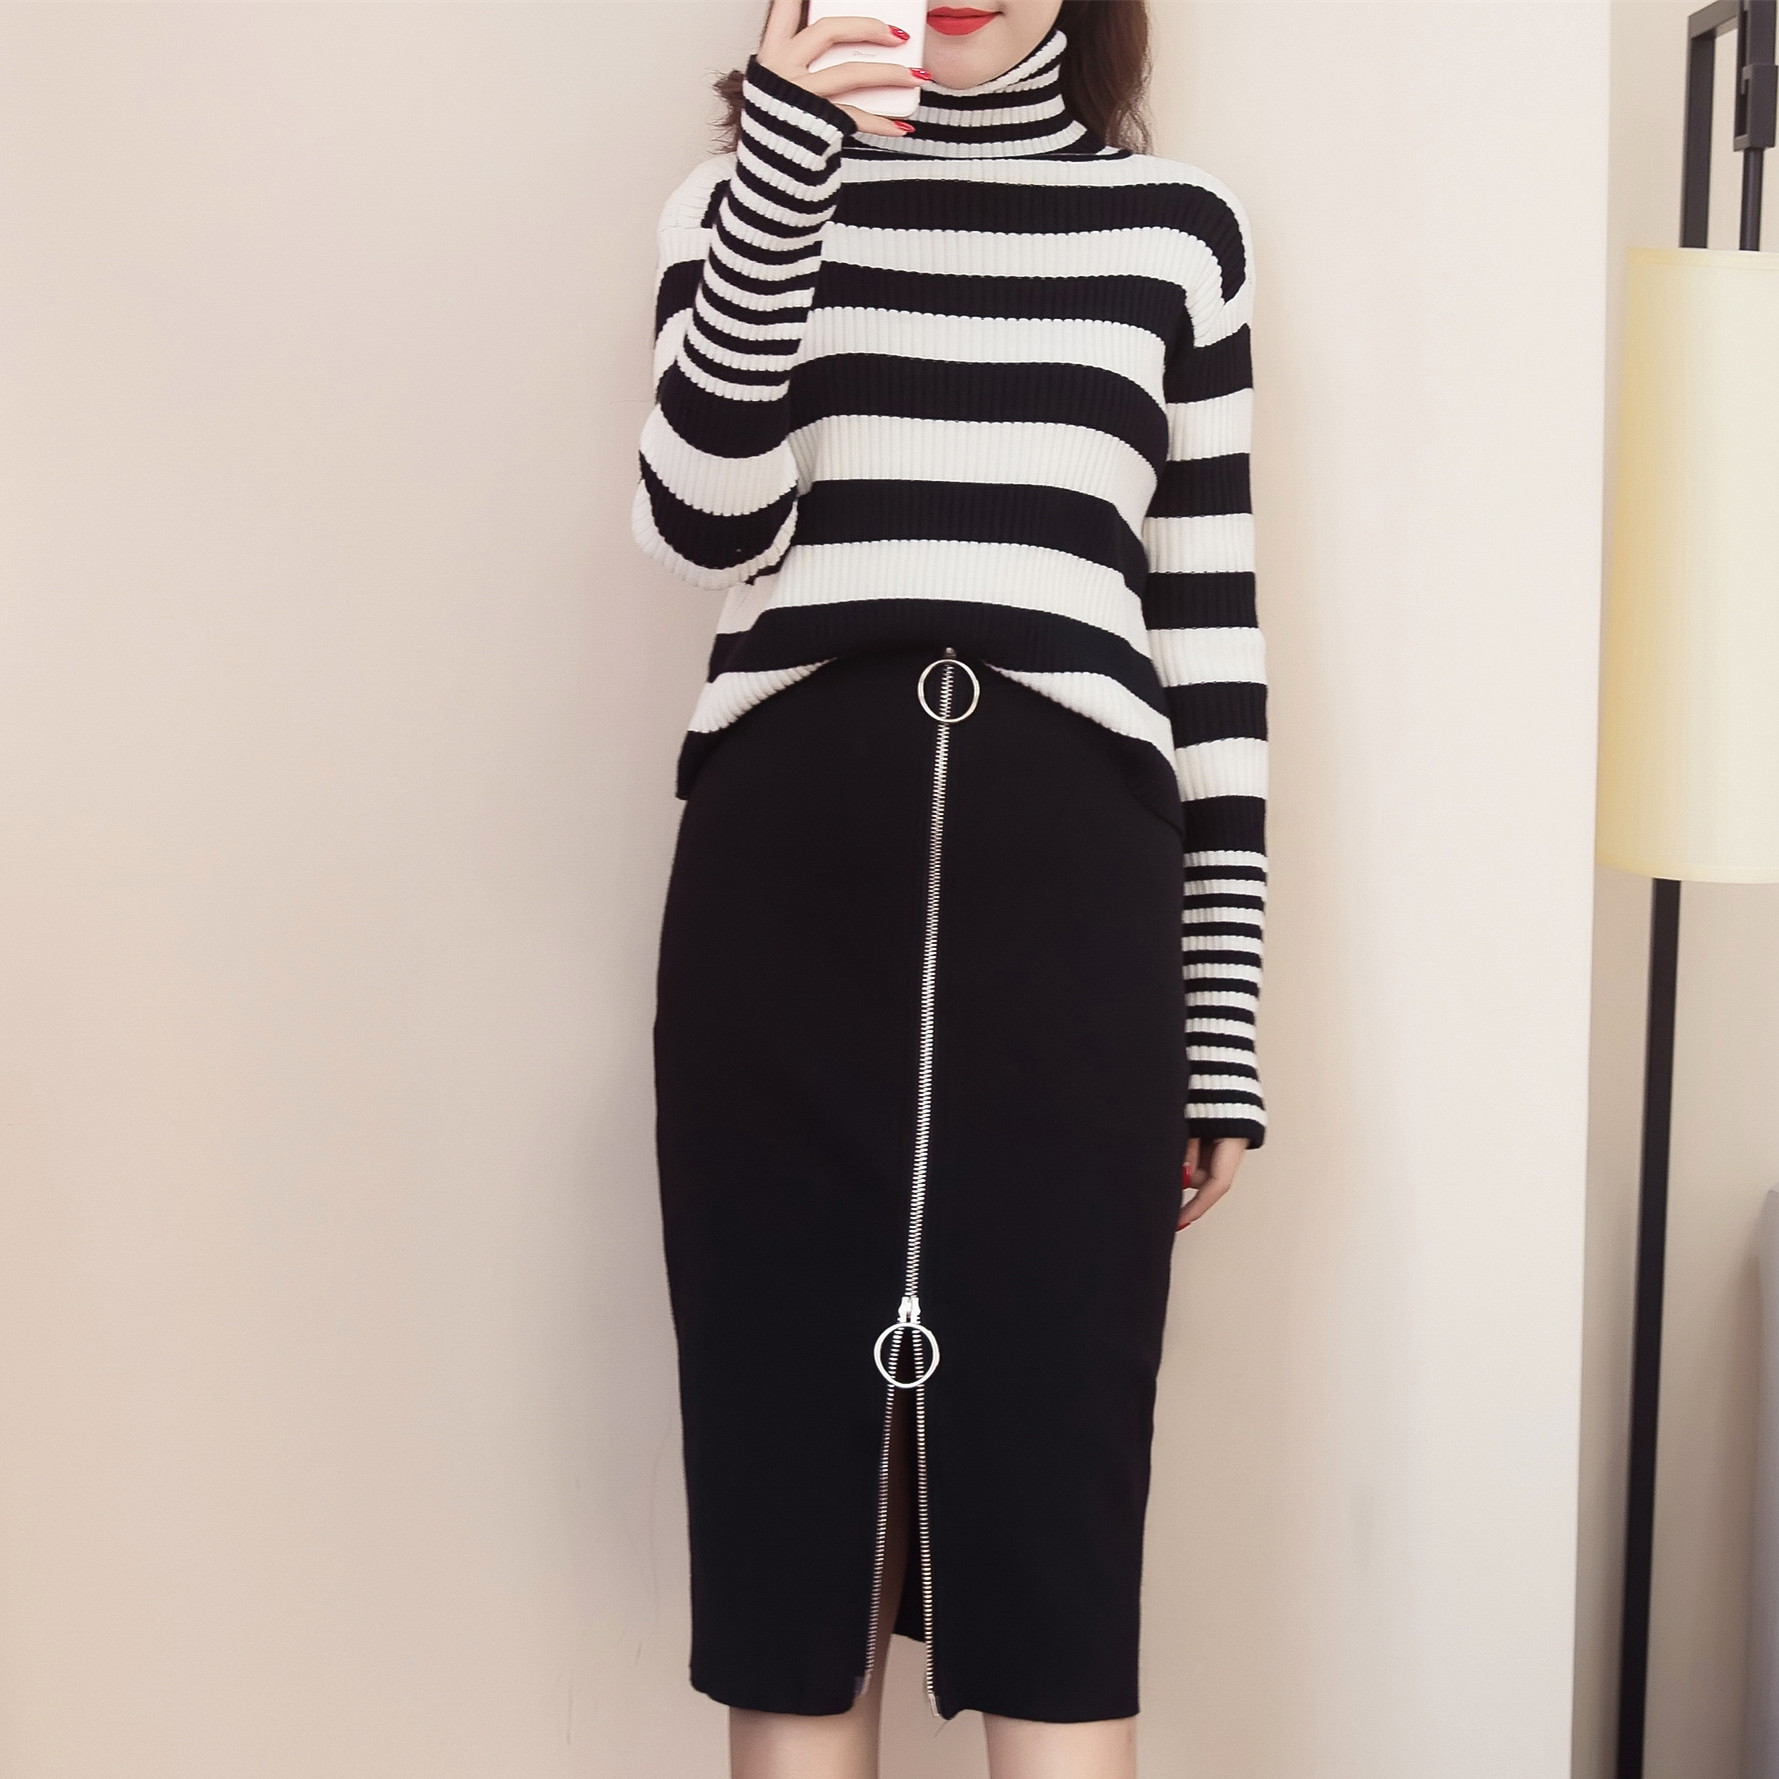 women knitted suits two pcs clothing set slip autumn winter pullover stripe sweater knitting black zip skirt suit casual outfit